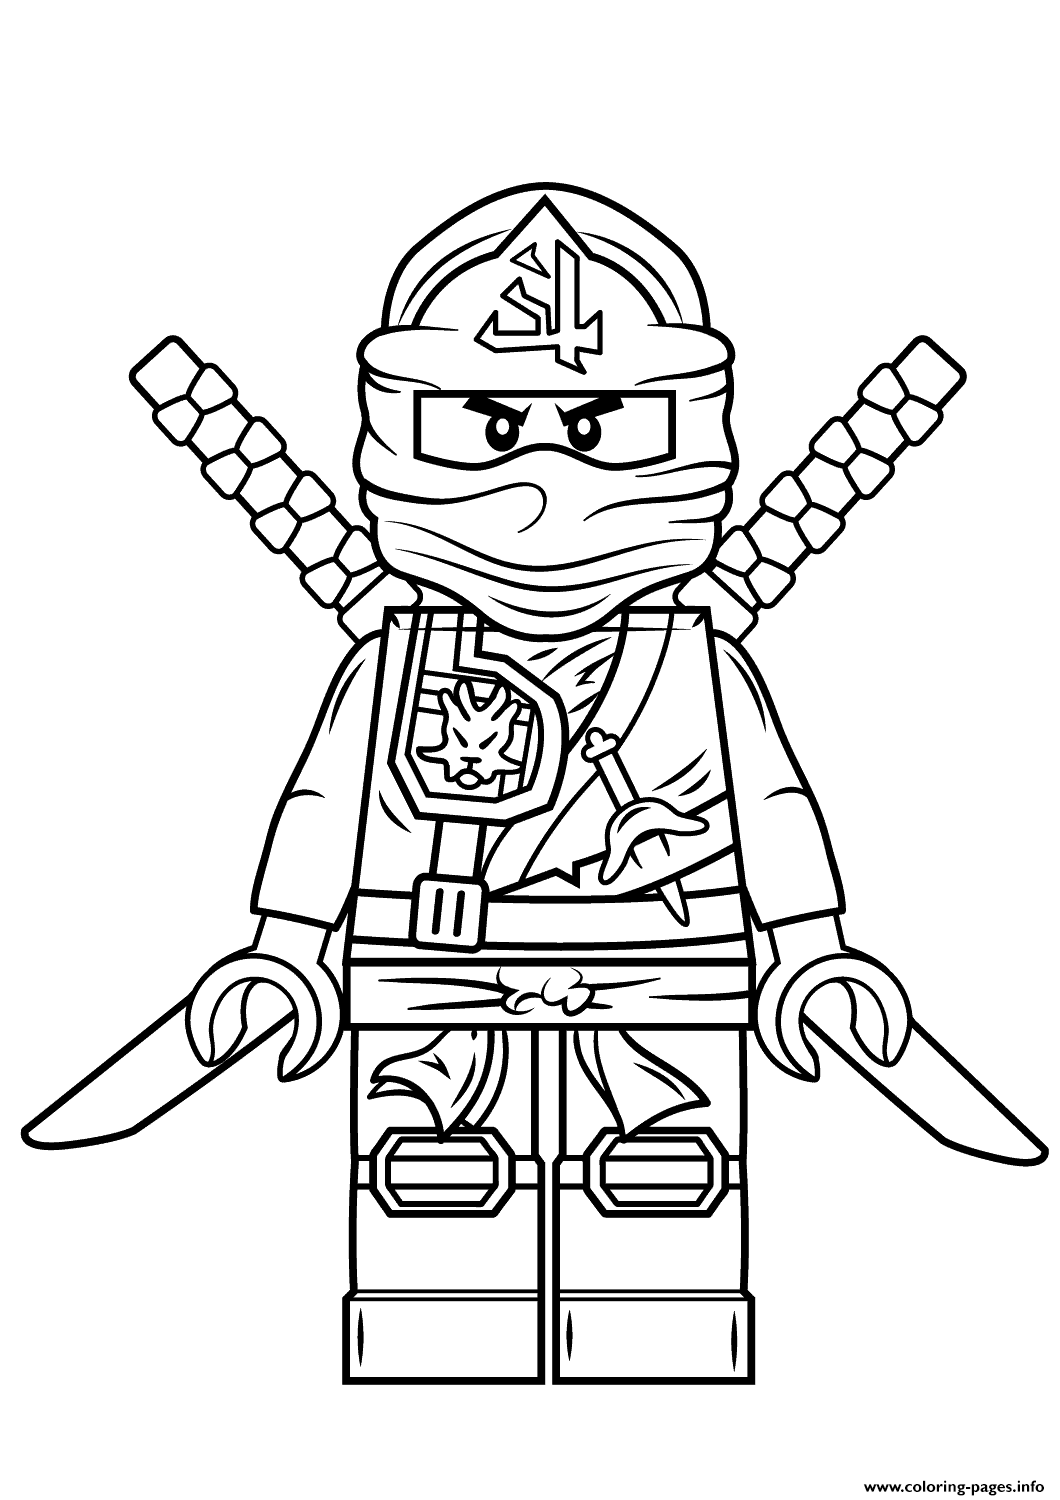 Lego Ninjago Green Ninja Coloring Pages